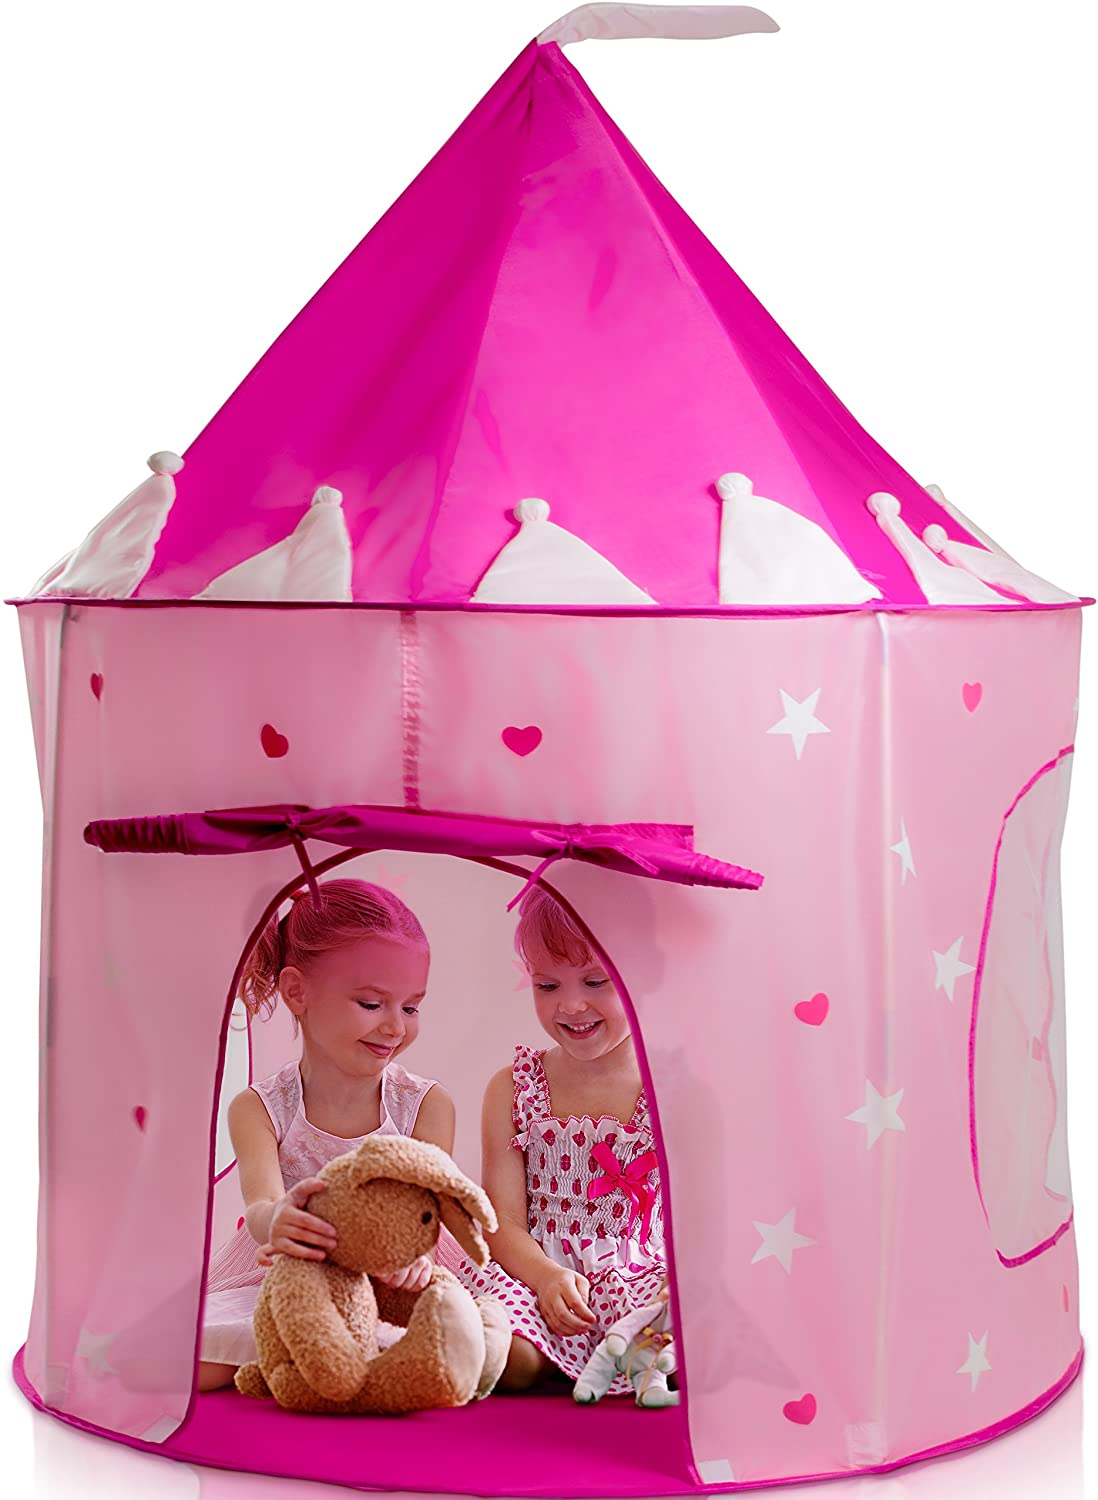 best Play22 Play Tent Princess Castle Pink - Kids Play Foldable Tent - Genuine For Indoor/Outdoor Use